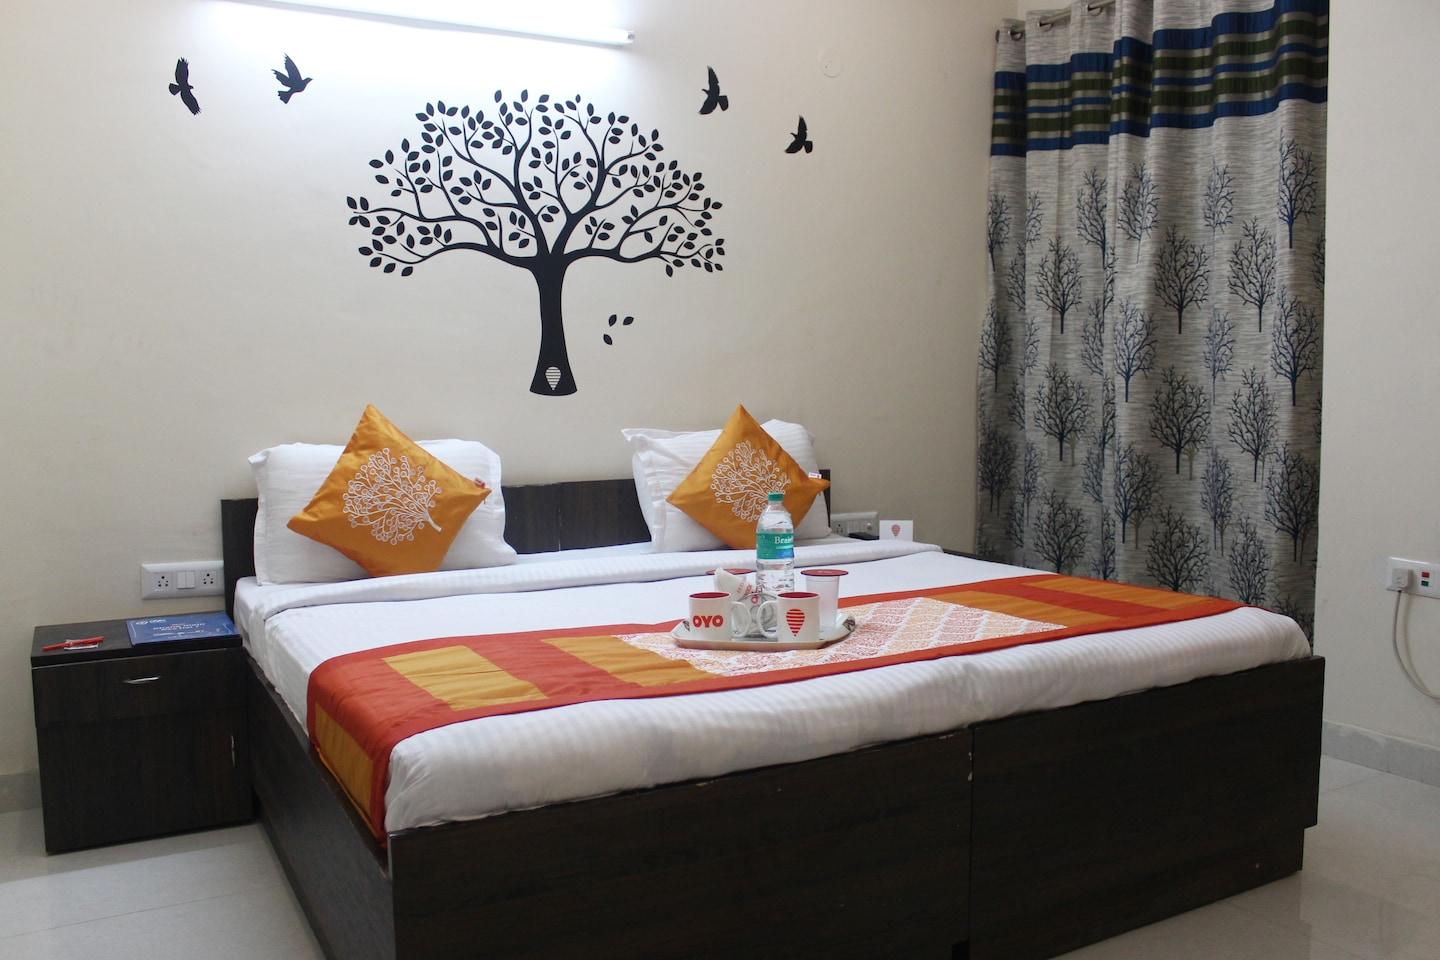 OYO Rooms 378 Sector 38 Gurgaon Room-1